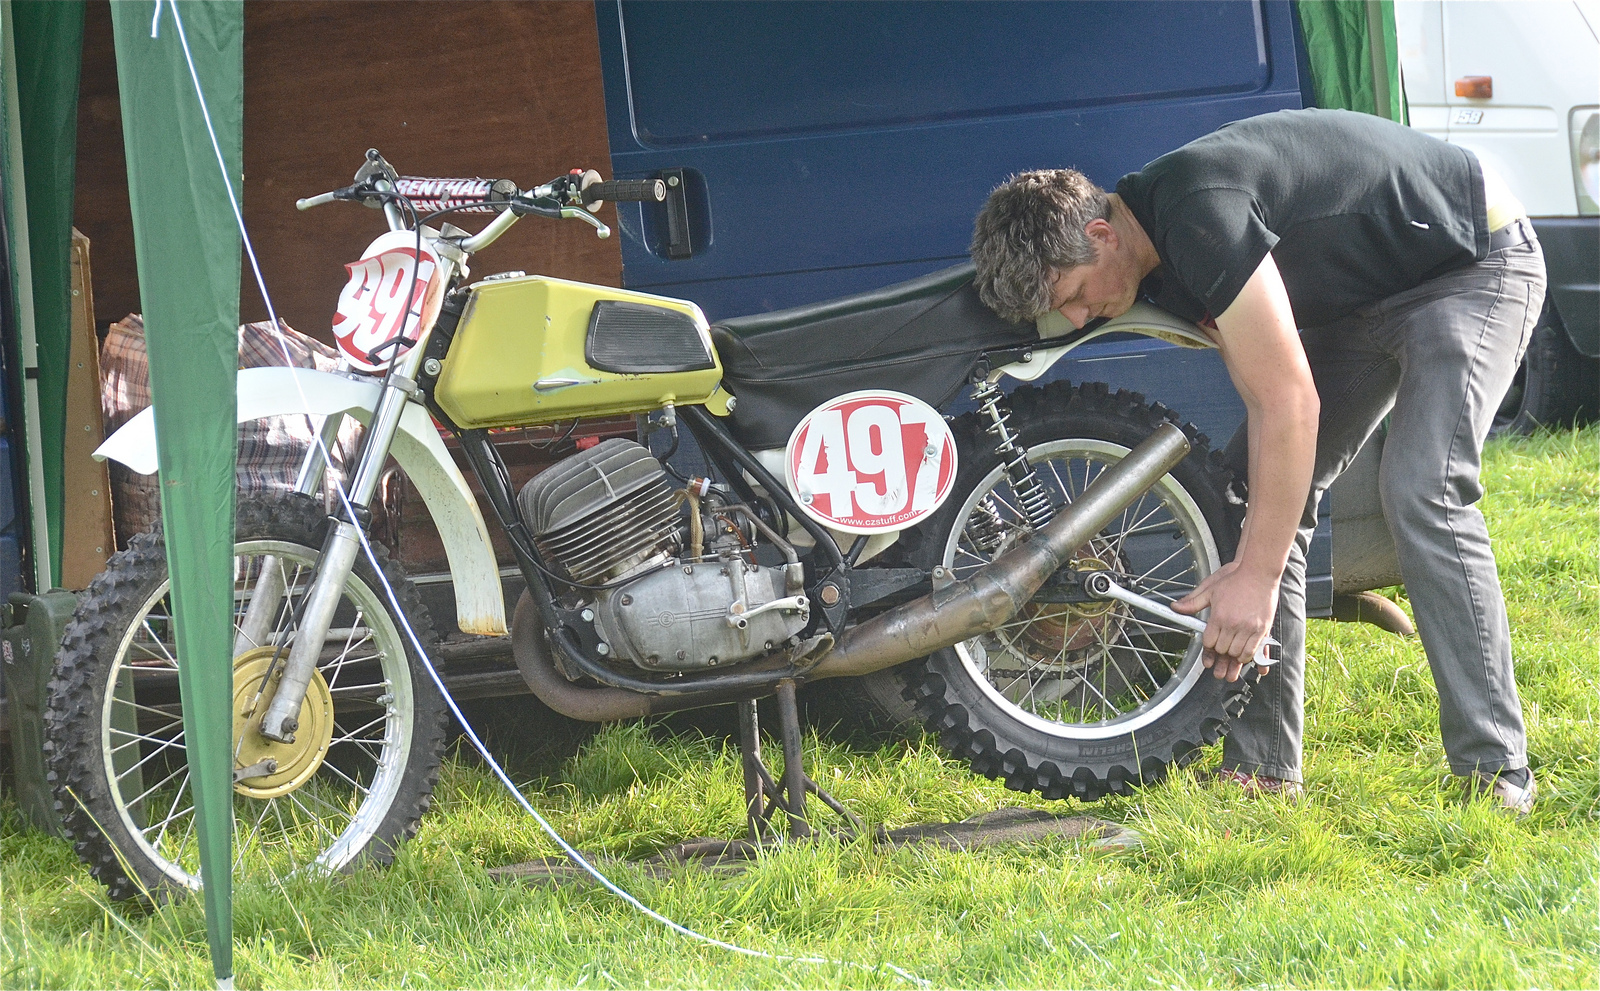 Llanthony Classic Scramble Photos September 2015 classicdirtbikerider.com  1